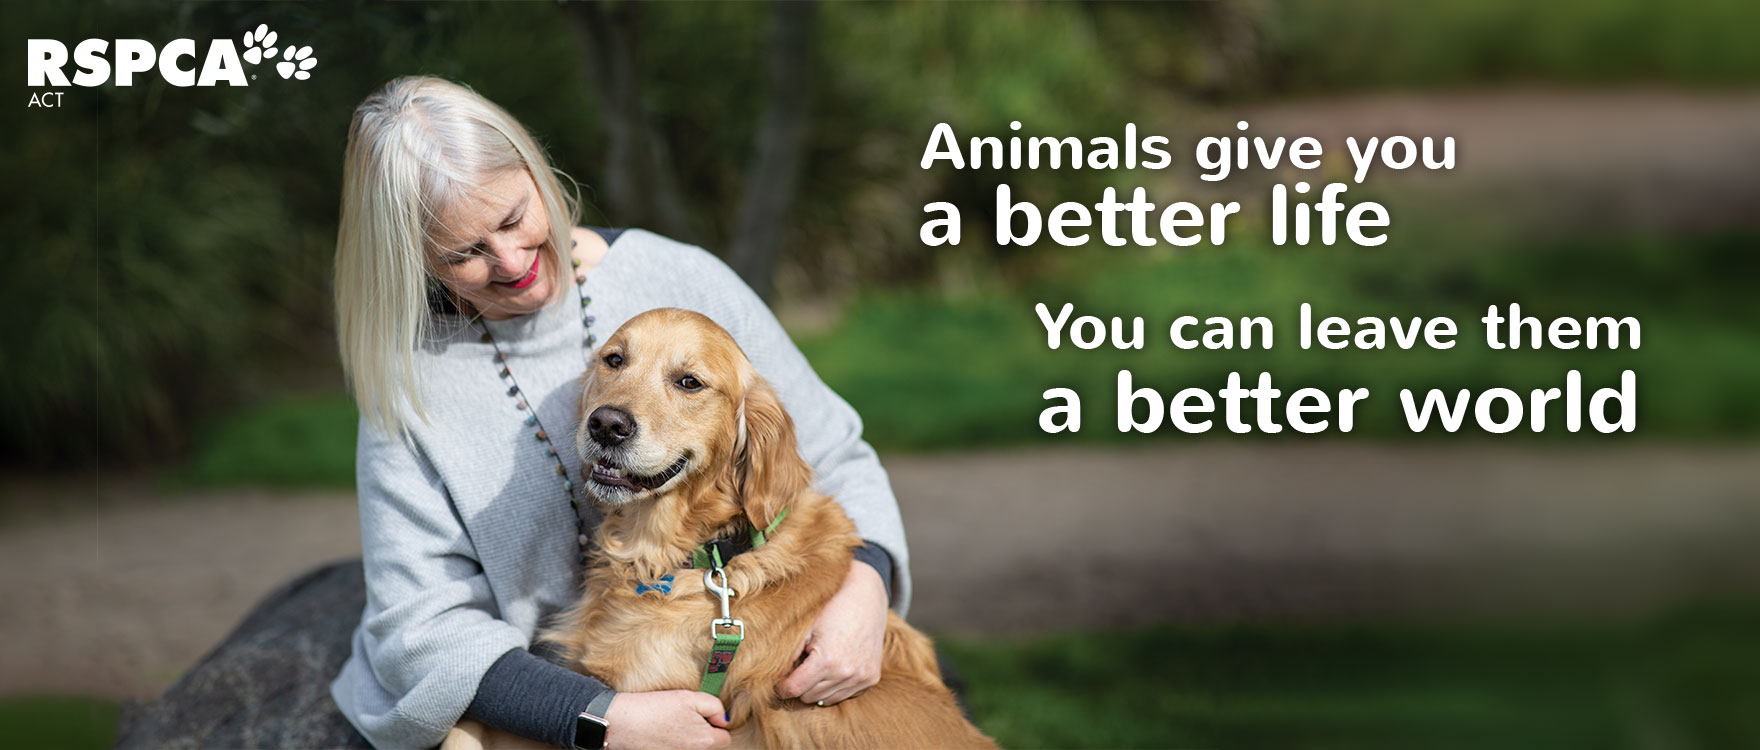 Animals give you a better life, you can leave them a better world